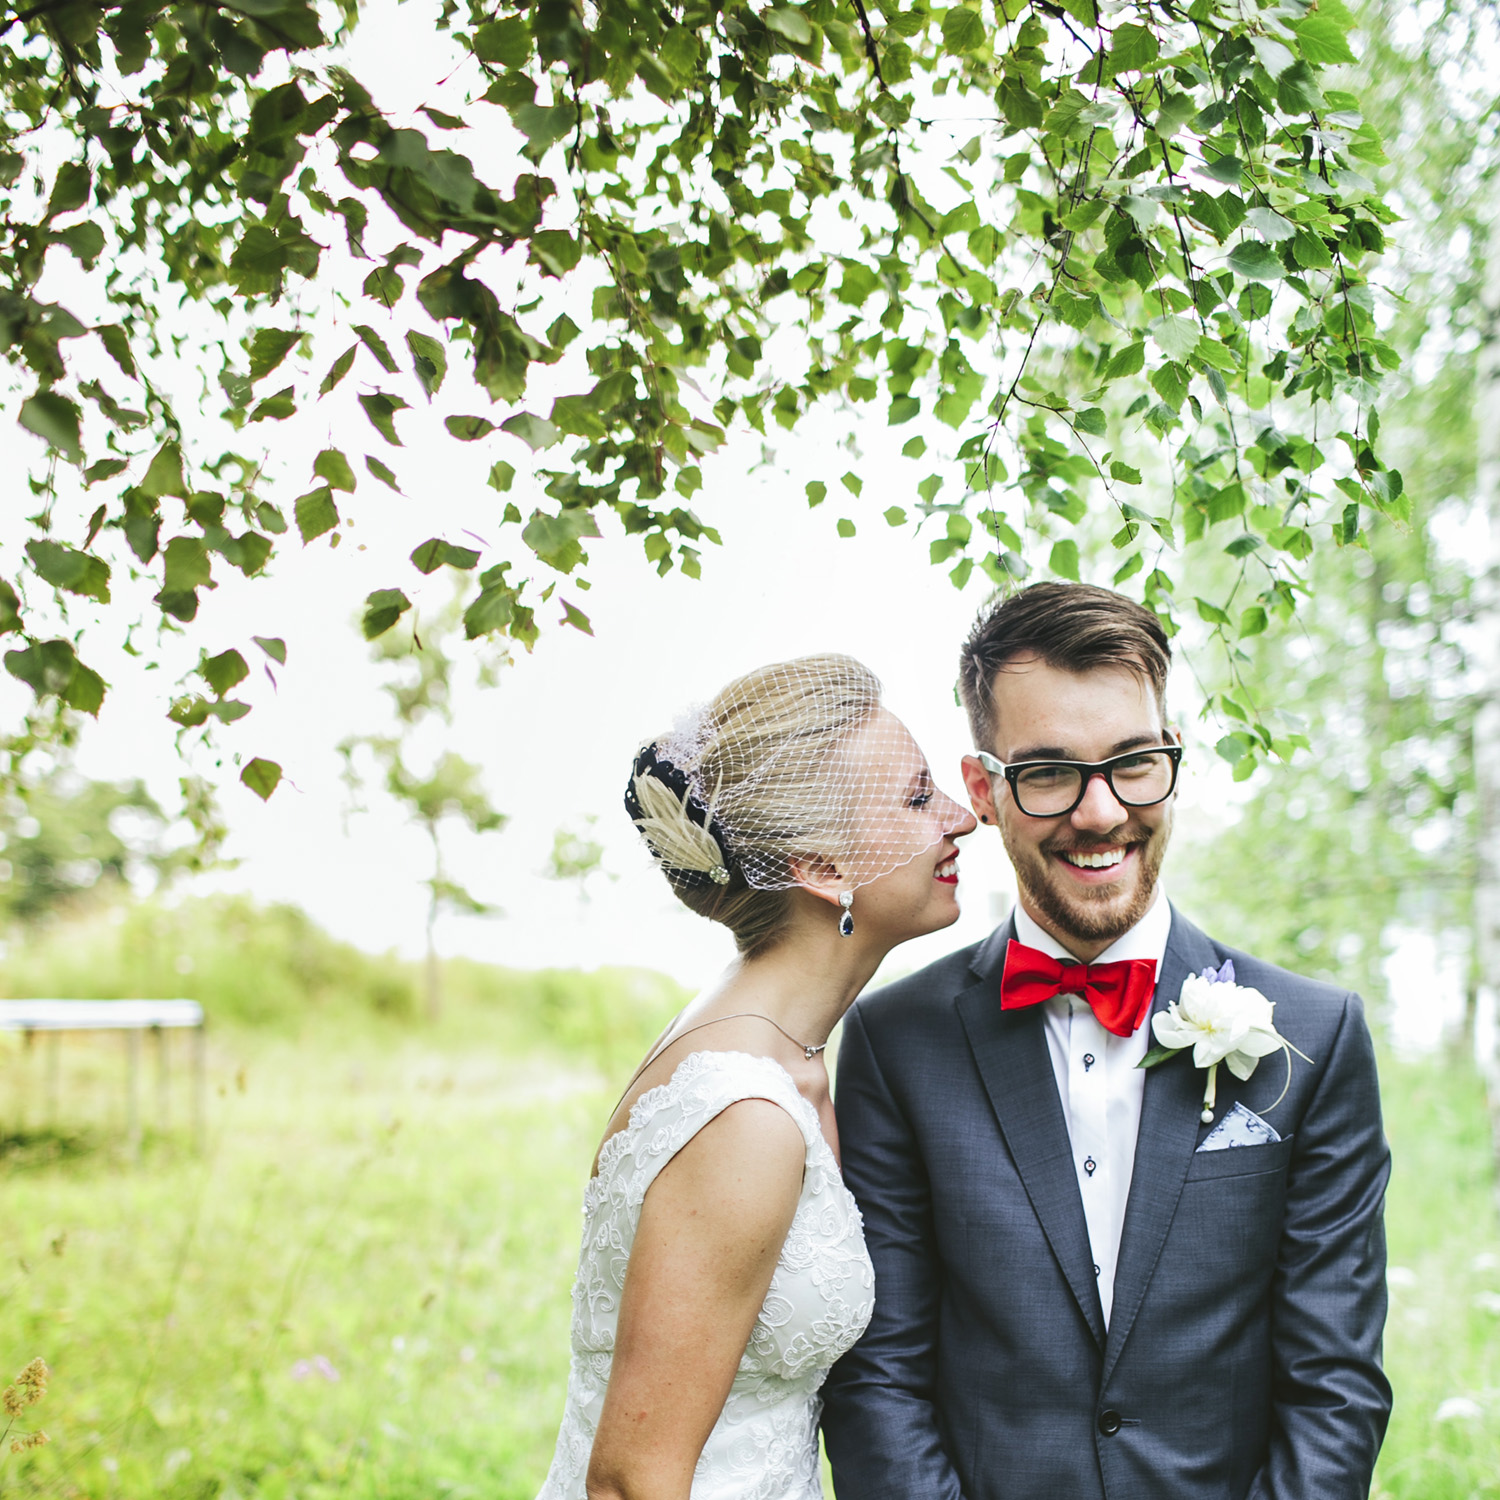 Brandon_werth_Sweden_wedding_Photographer_baltic_sea_59.jpg